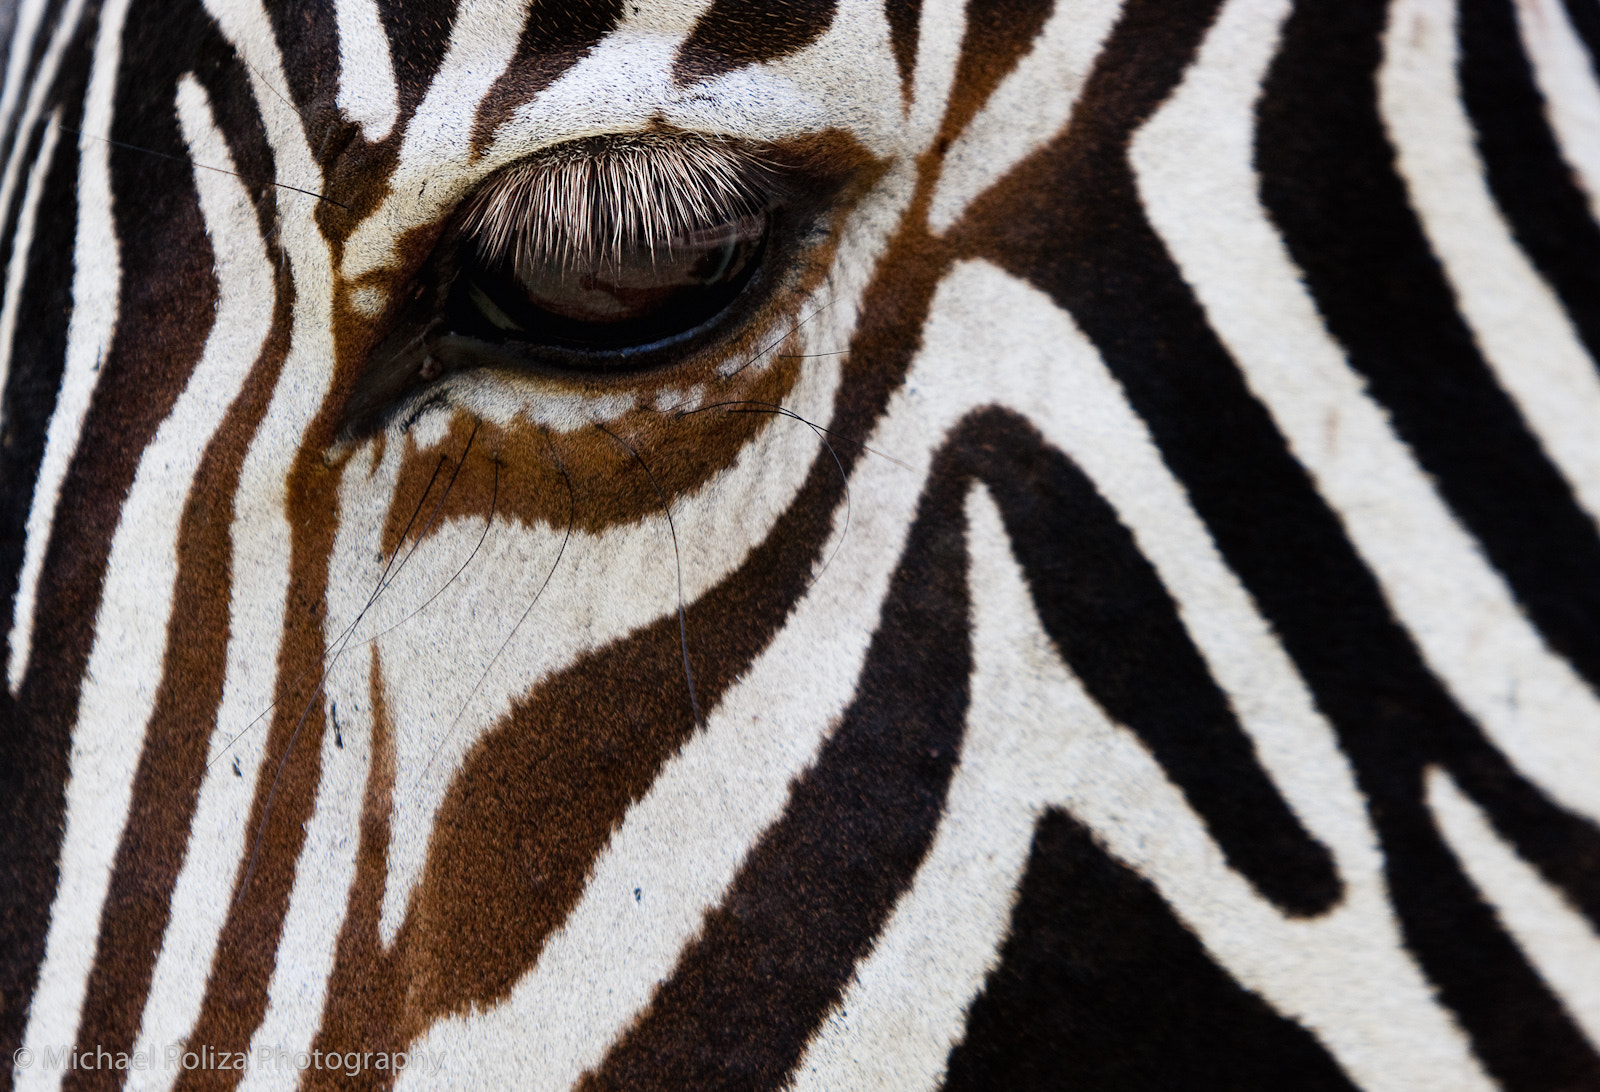 Photograph Grevy Zebra by Michael Poliza on 500px